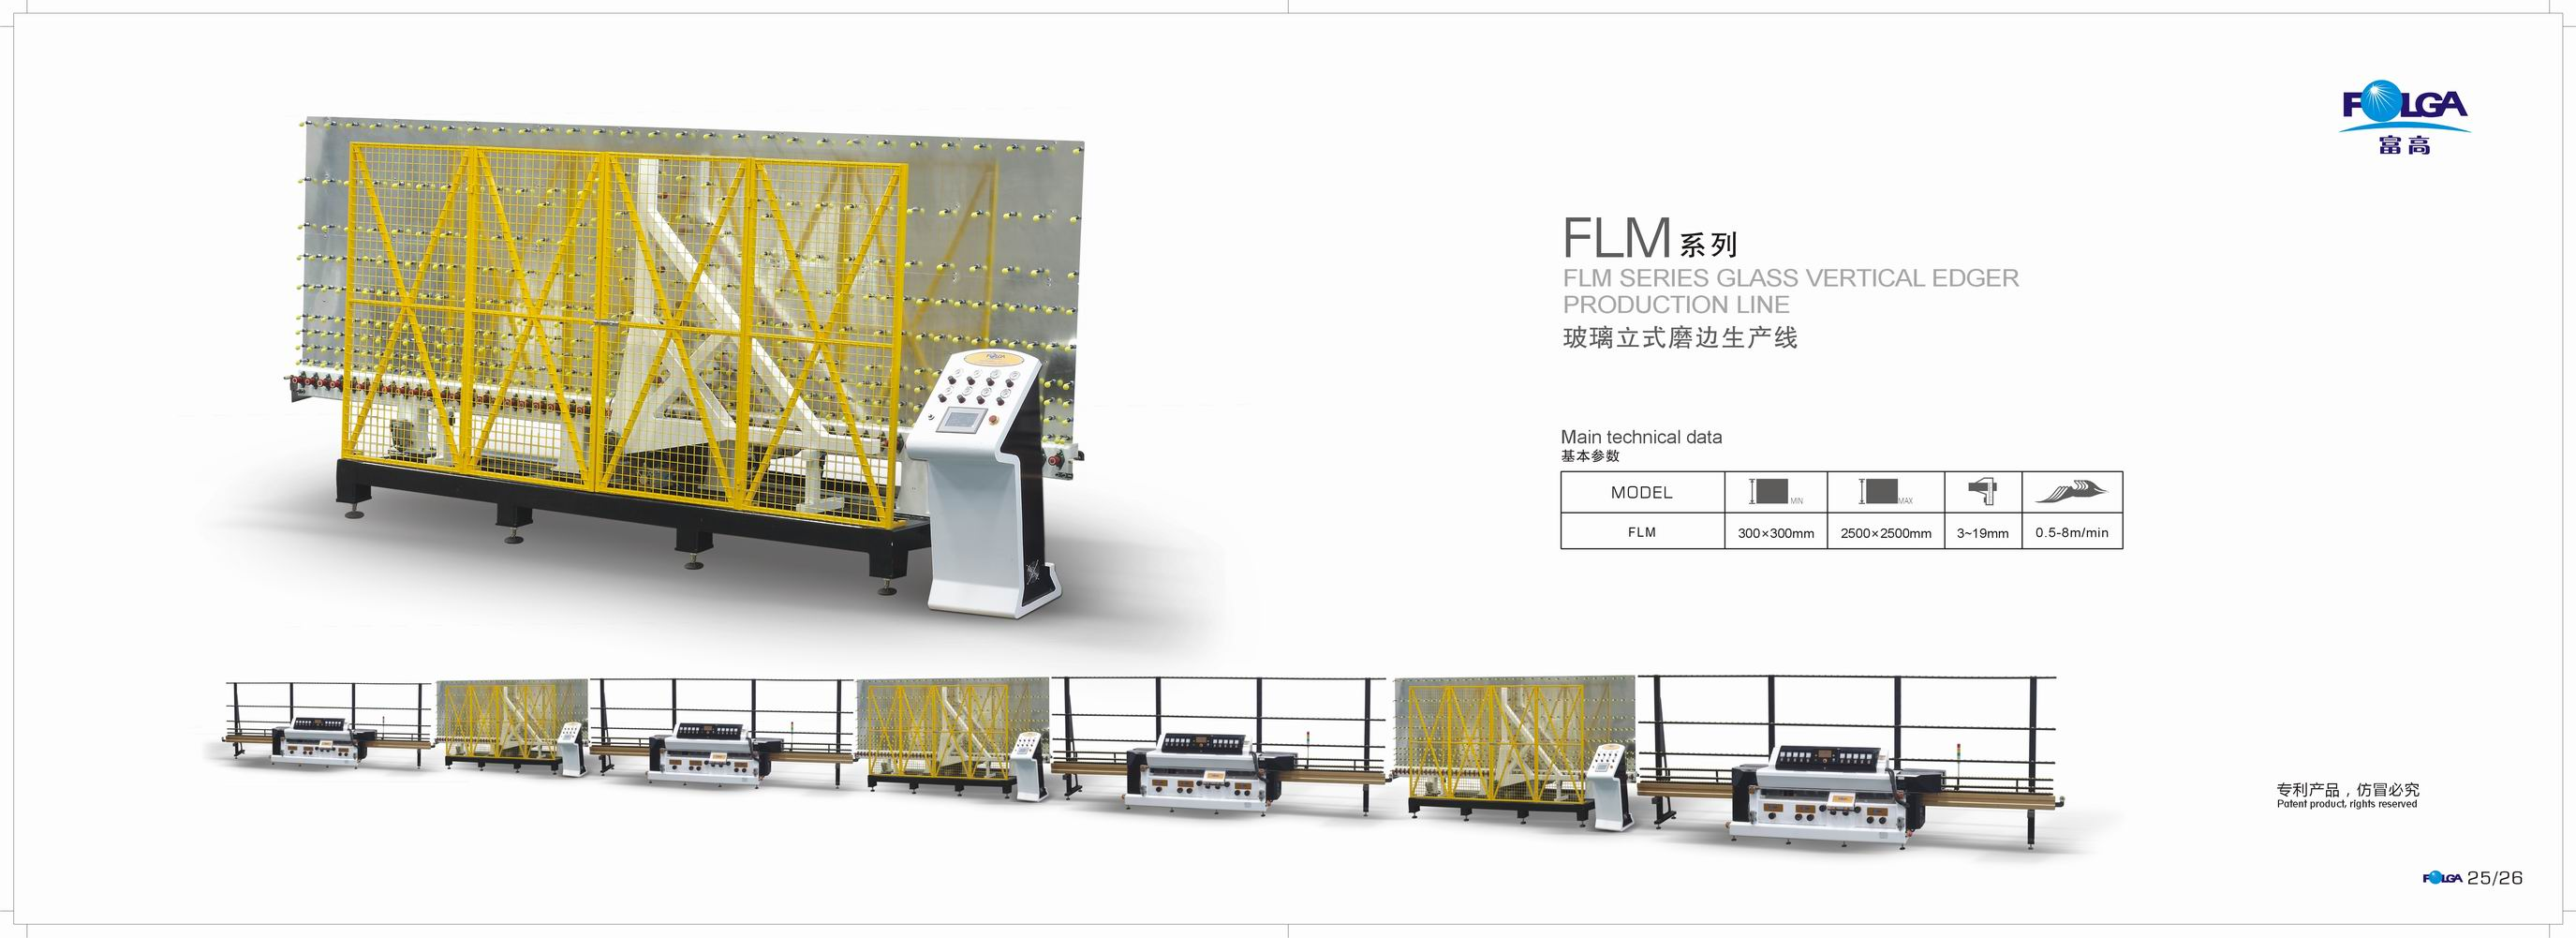 FLM Series Glass Vertical Edger Production Line